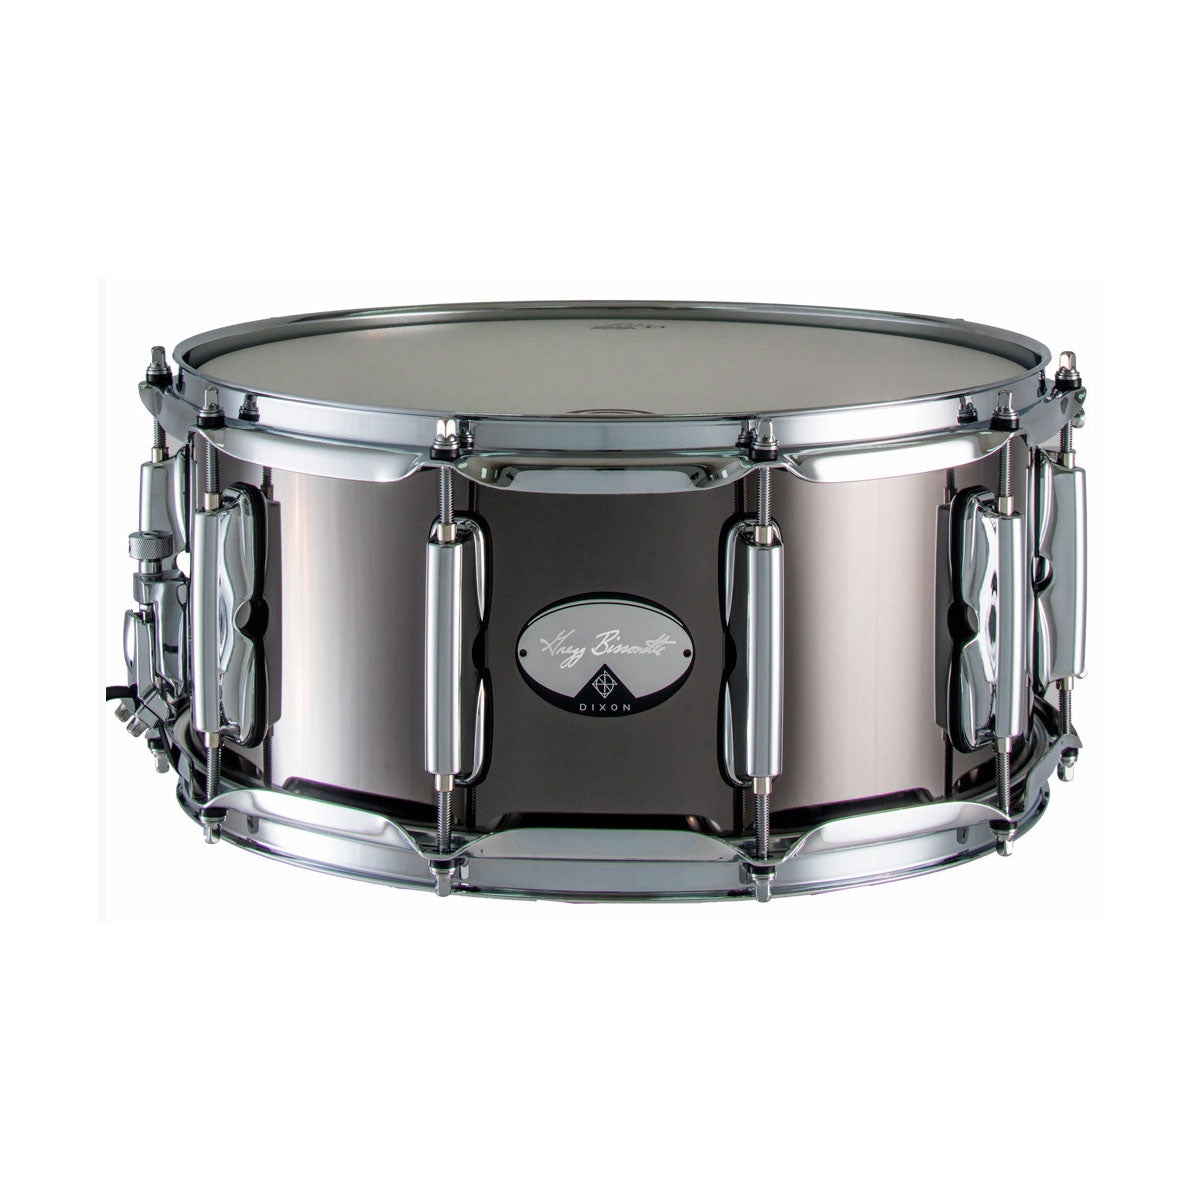 Dixon Gregg Bissonette Signature Snare Drum Steel Black Nickel - 14x6.5inch - PDSAN654GBS